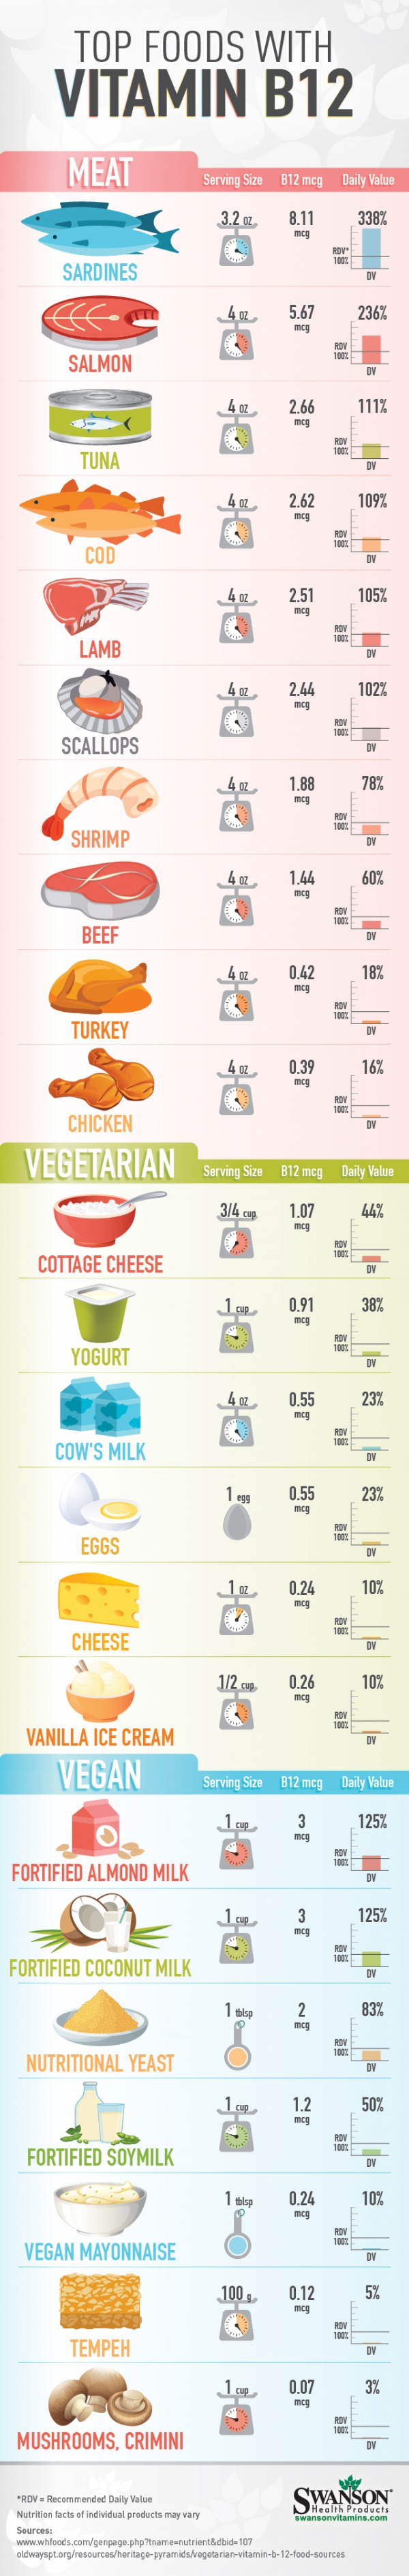 Vitamin B12 Rich Foods (for Vegans and Omnivores)